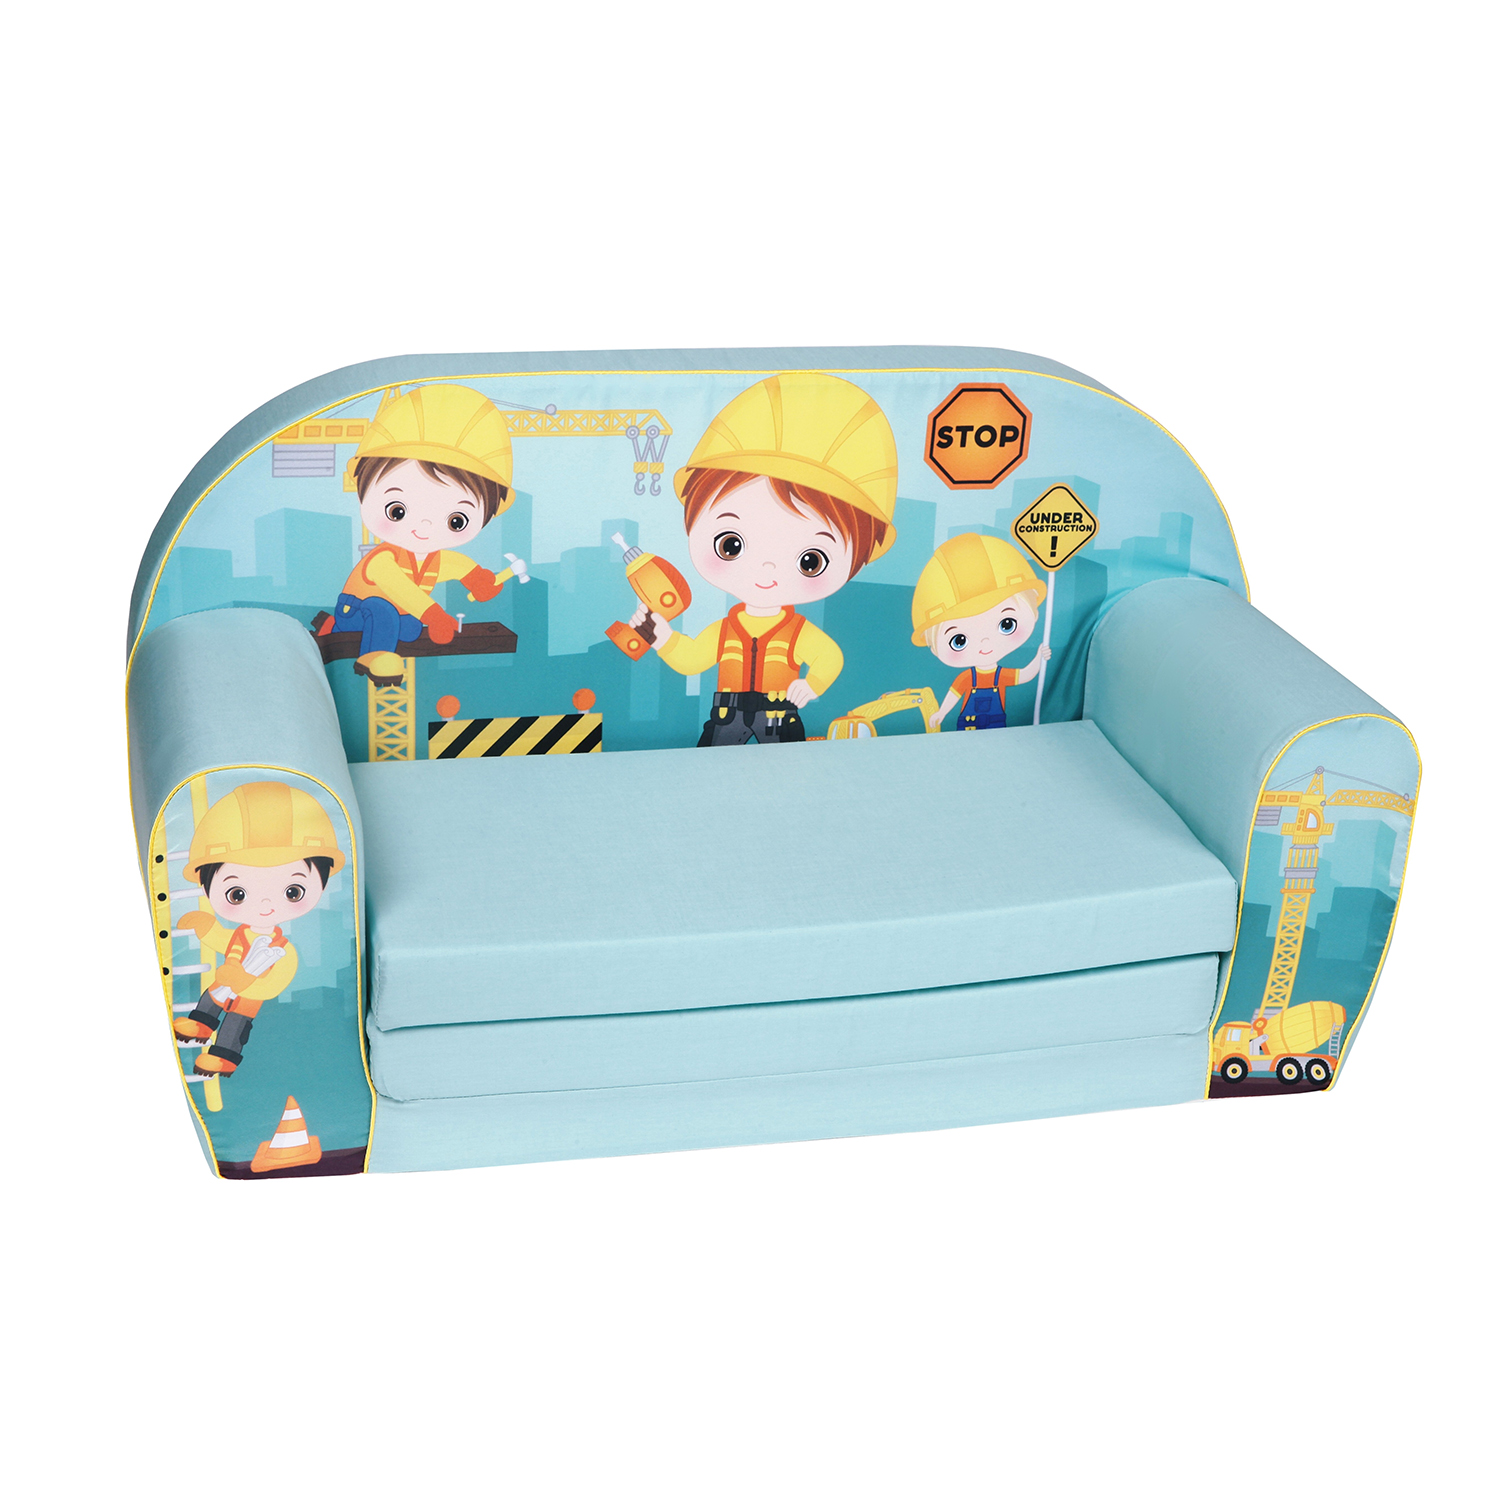 knorr baby gmbh kinder schlafsofa baustelle blau online kaufen. Black Bedroom Furniture Sets. Home Design Ideas